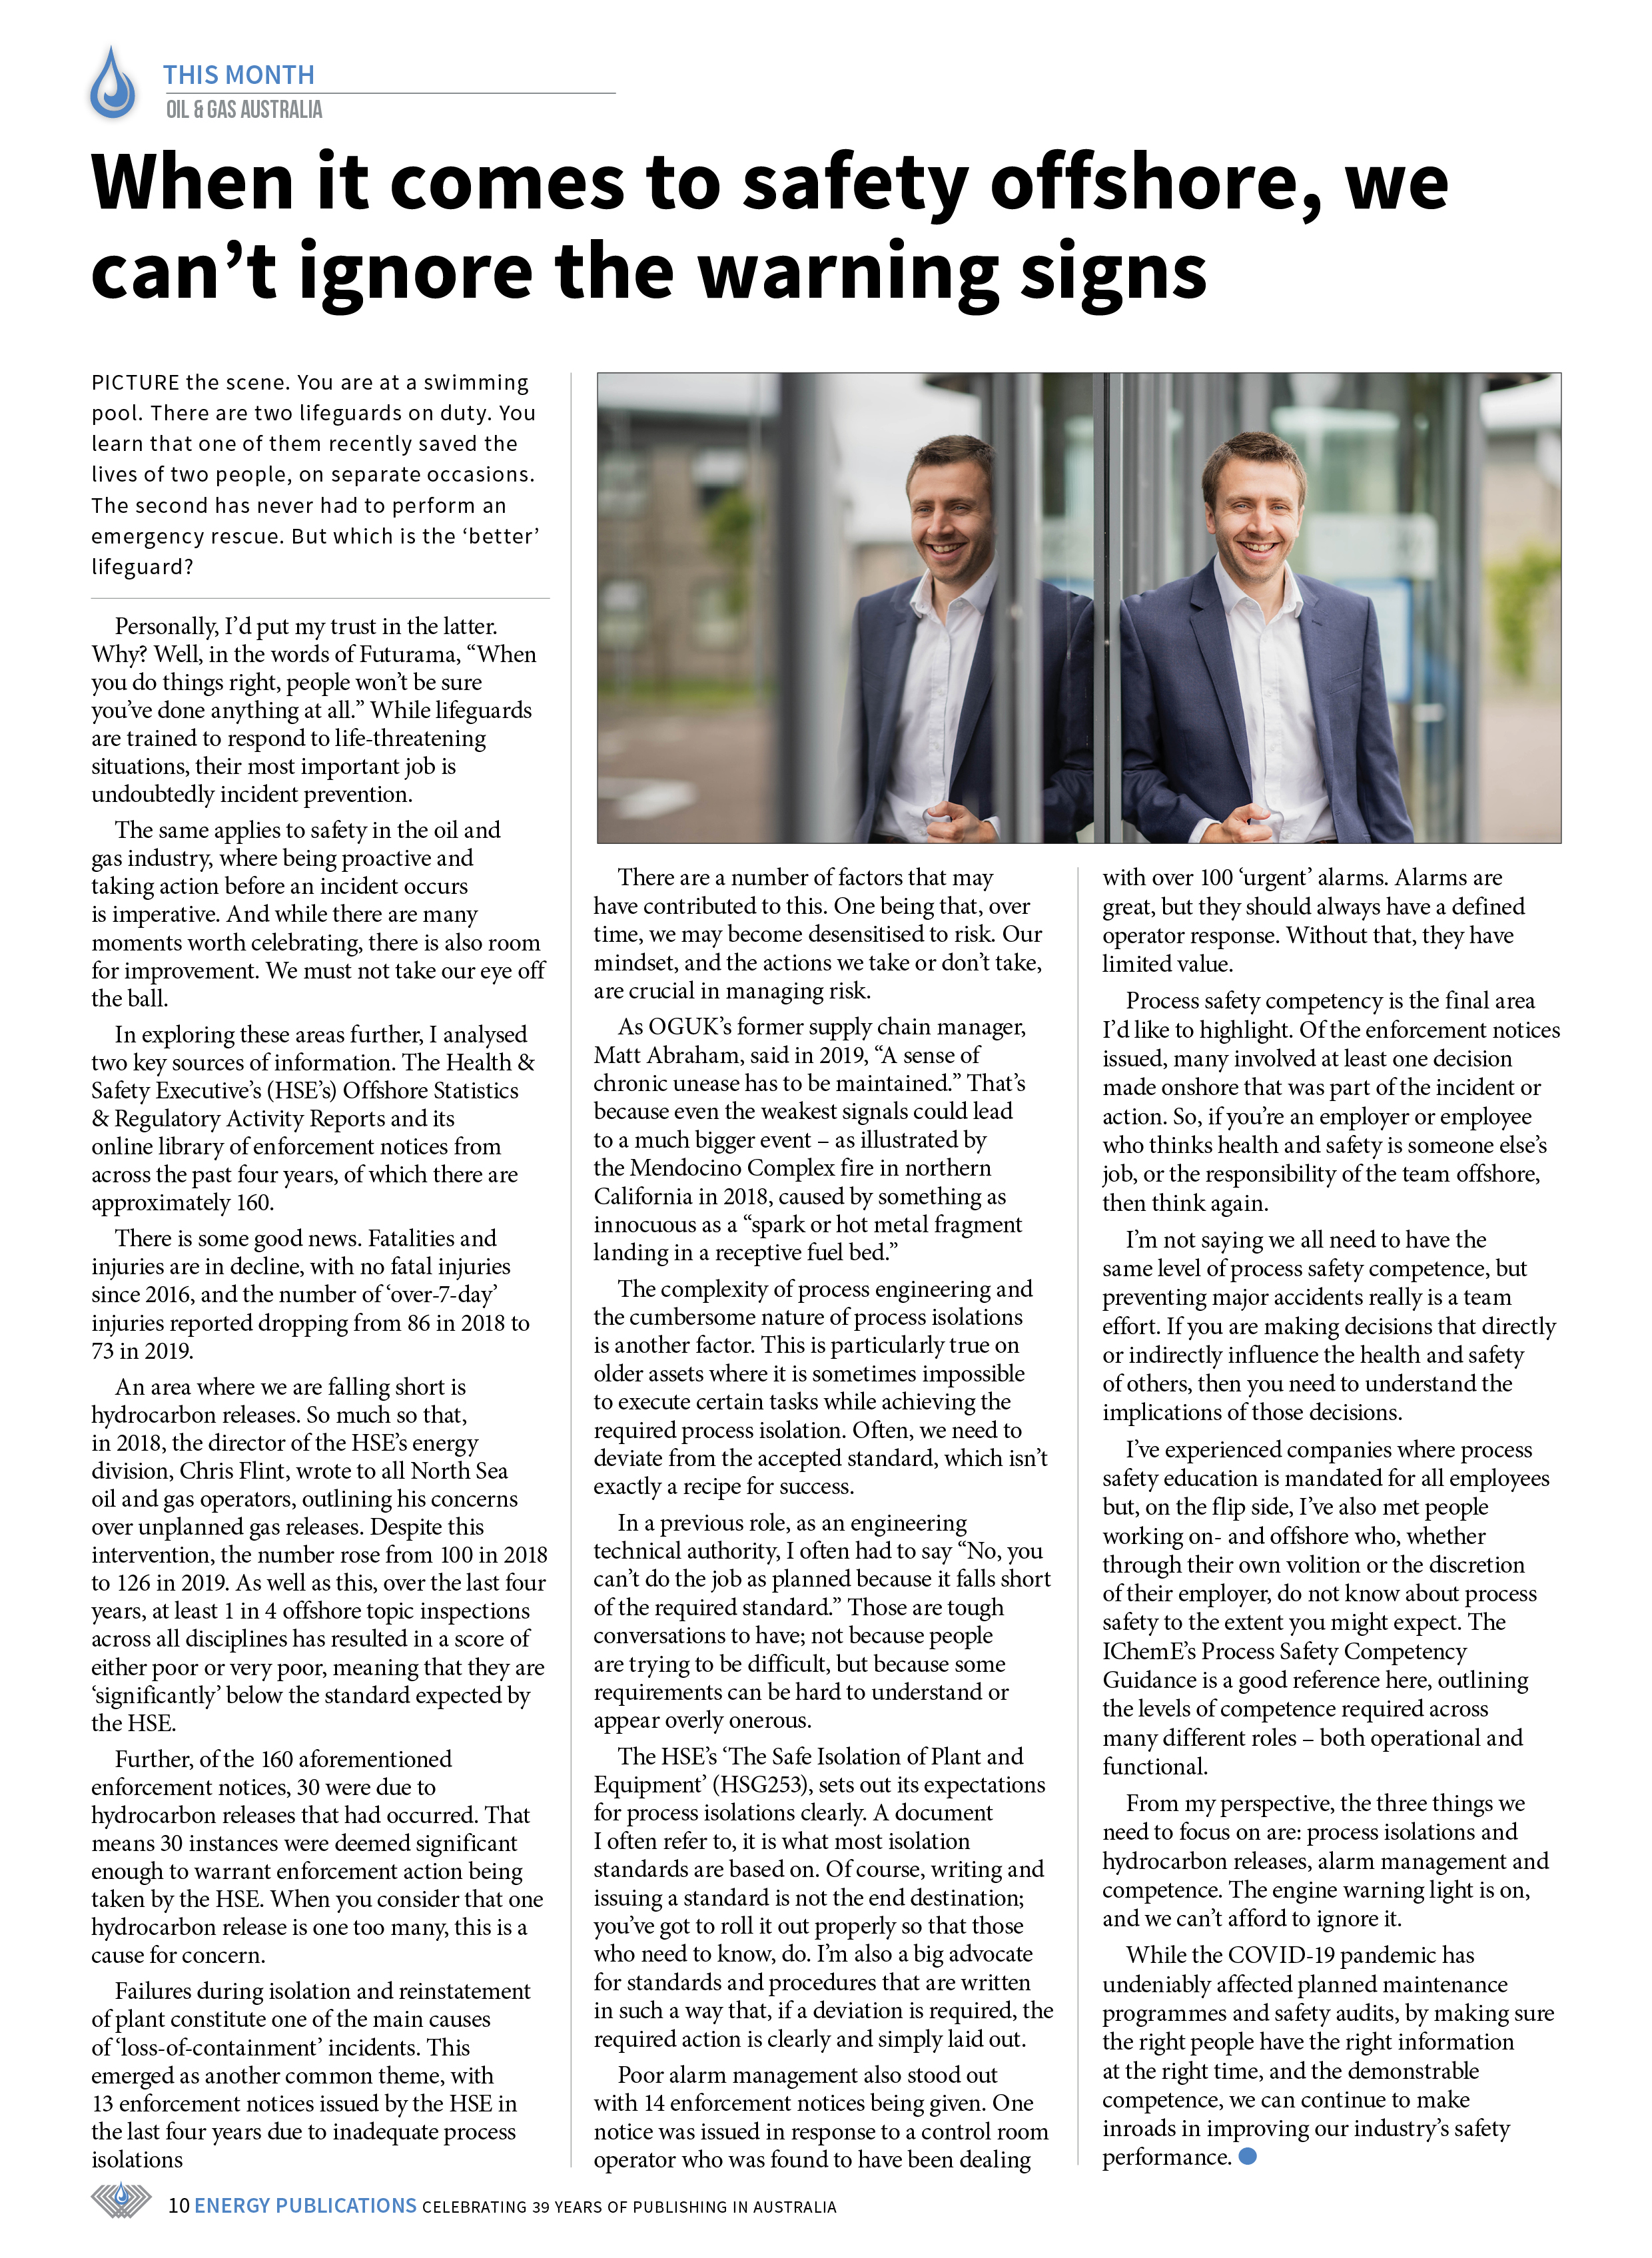 Oil & Gas Australia – May 2021 – Page 12